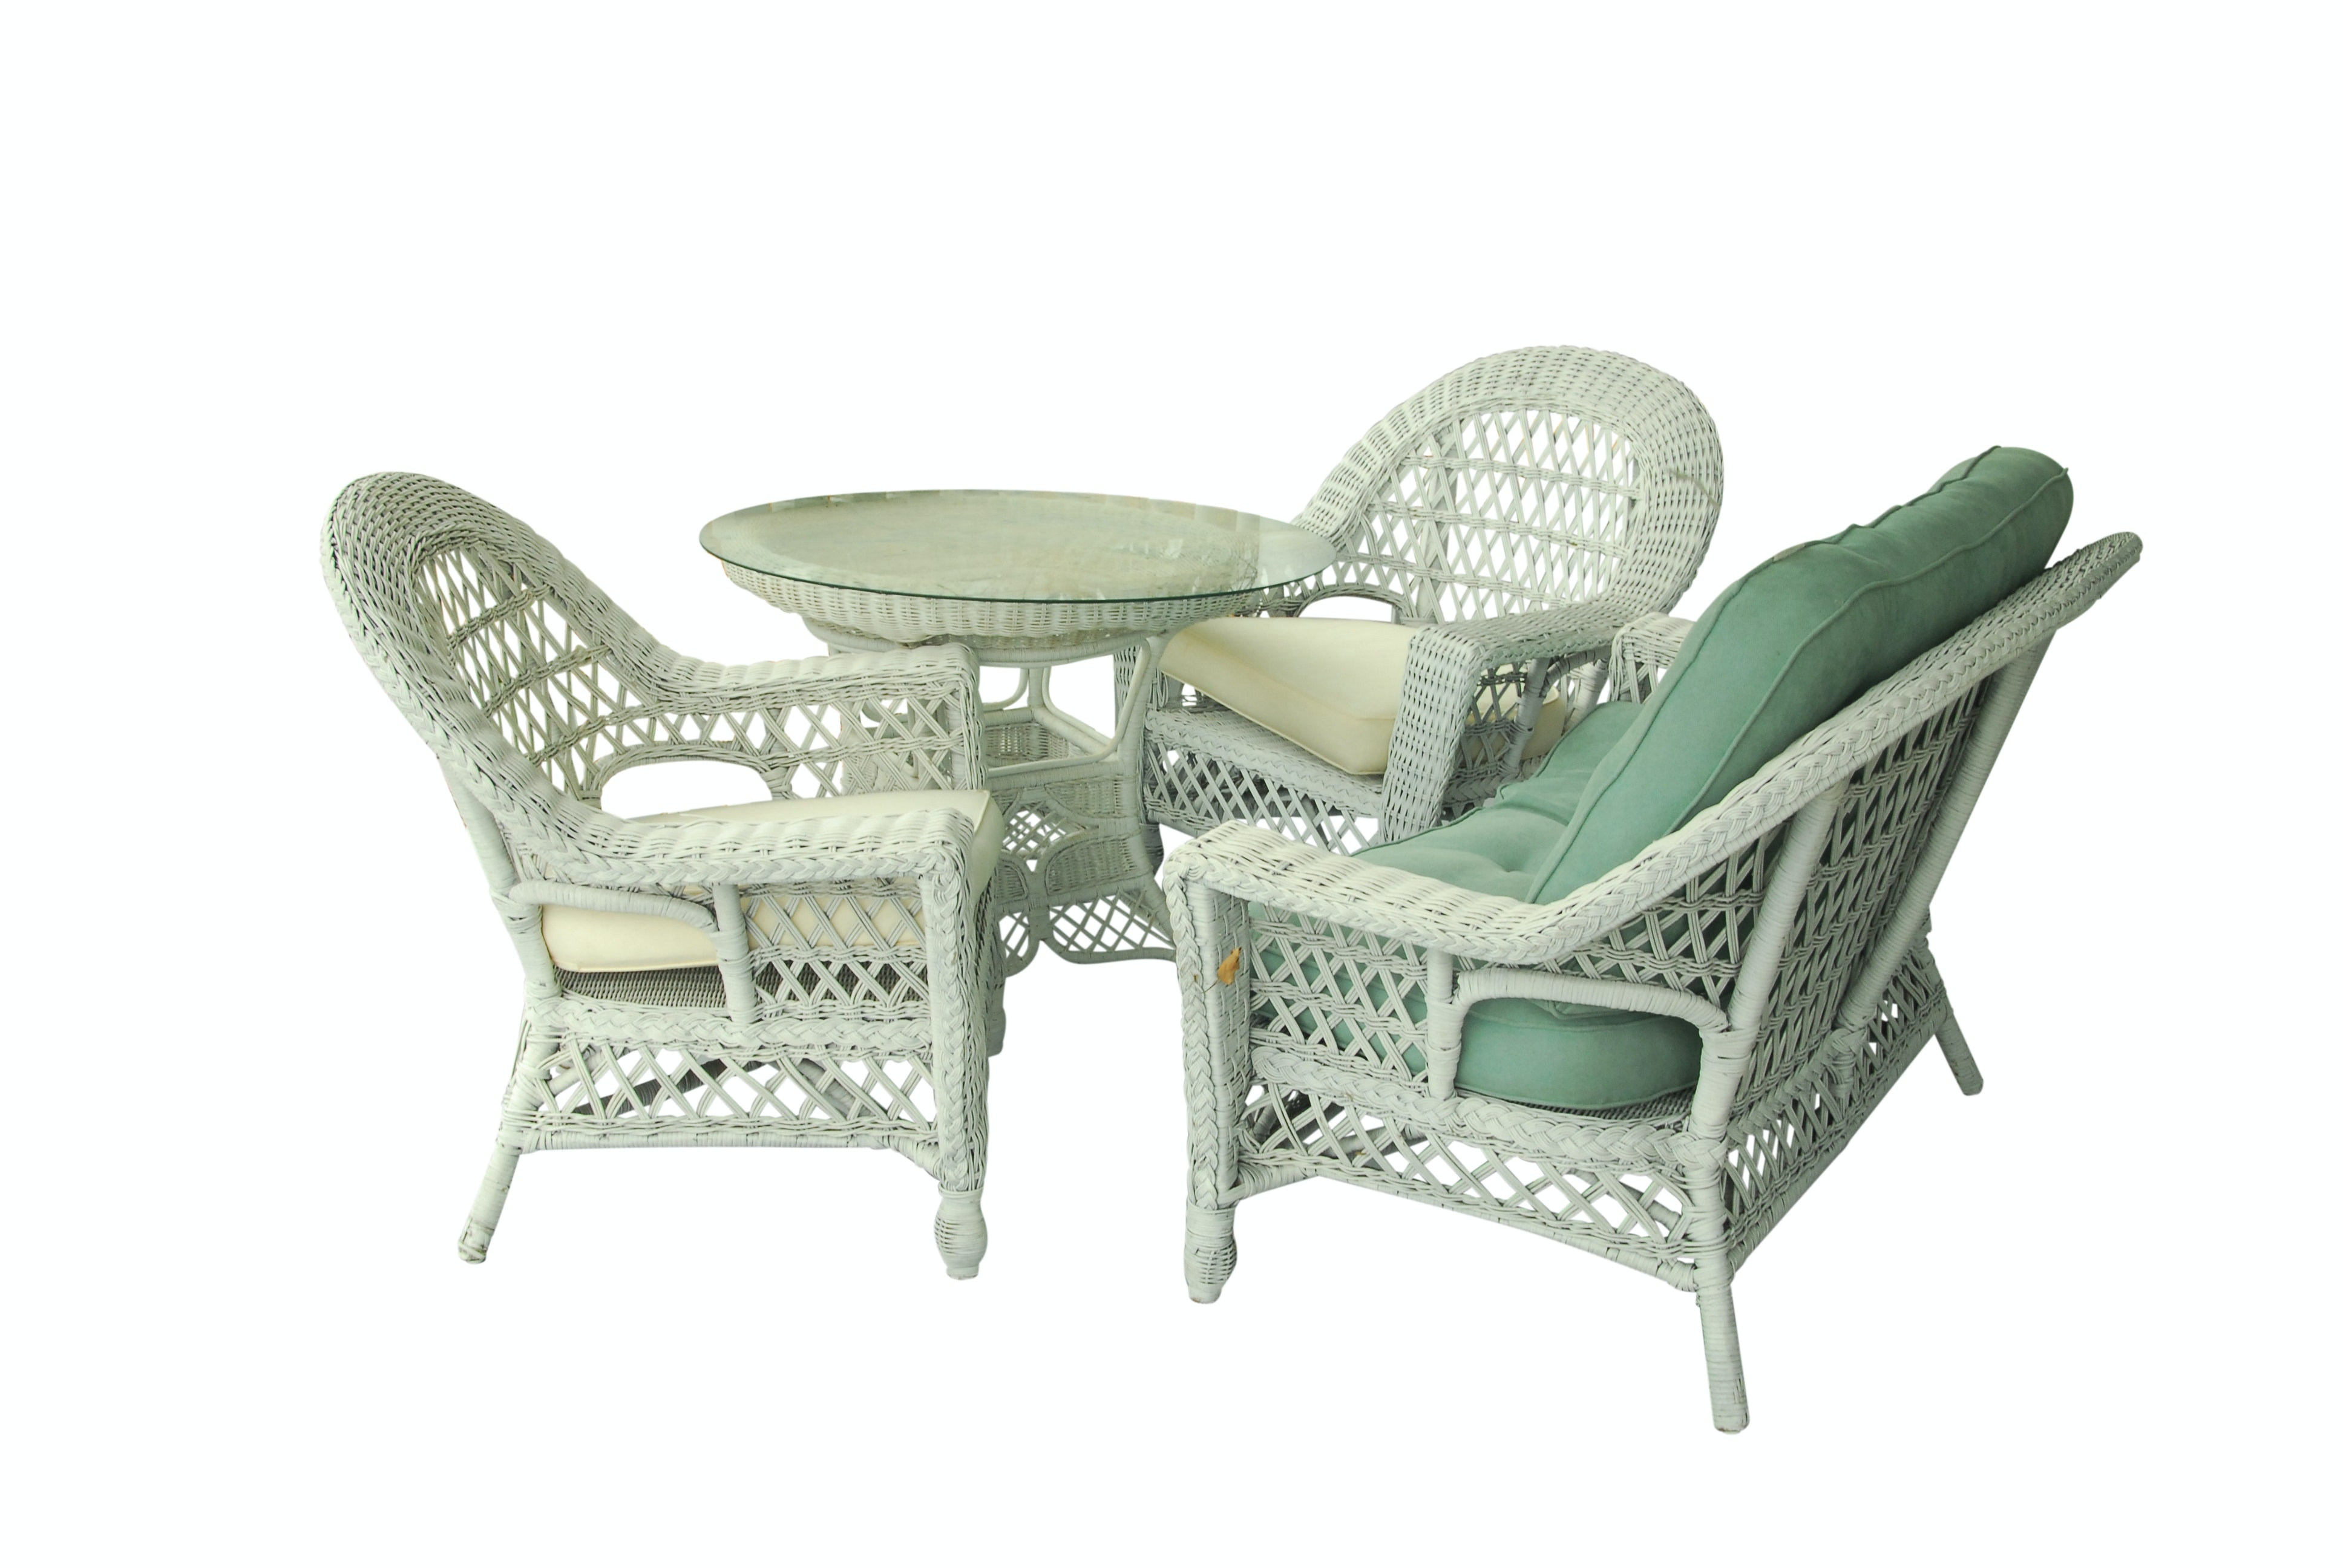 Wicker Loveseat, Armchairs and Table with Glass Top